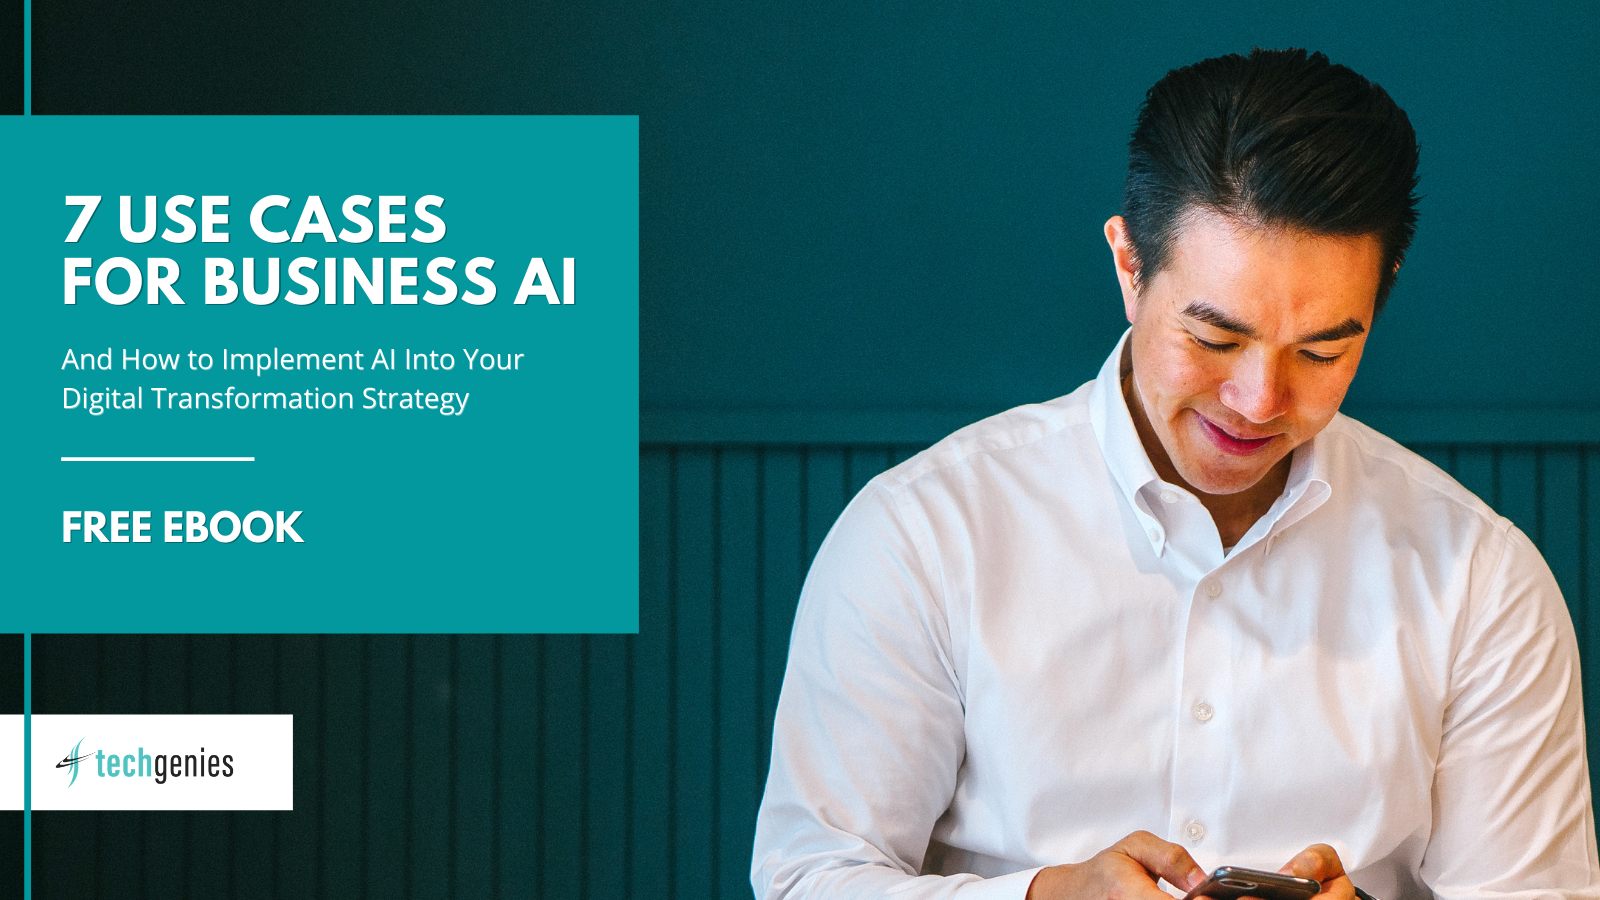 AI digital transformation strategy 7 Use Cases for Business thumbnail